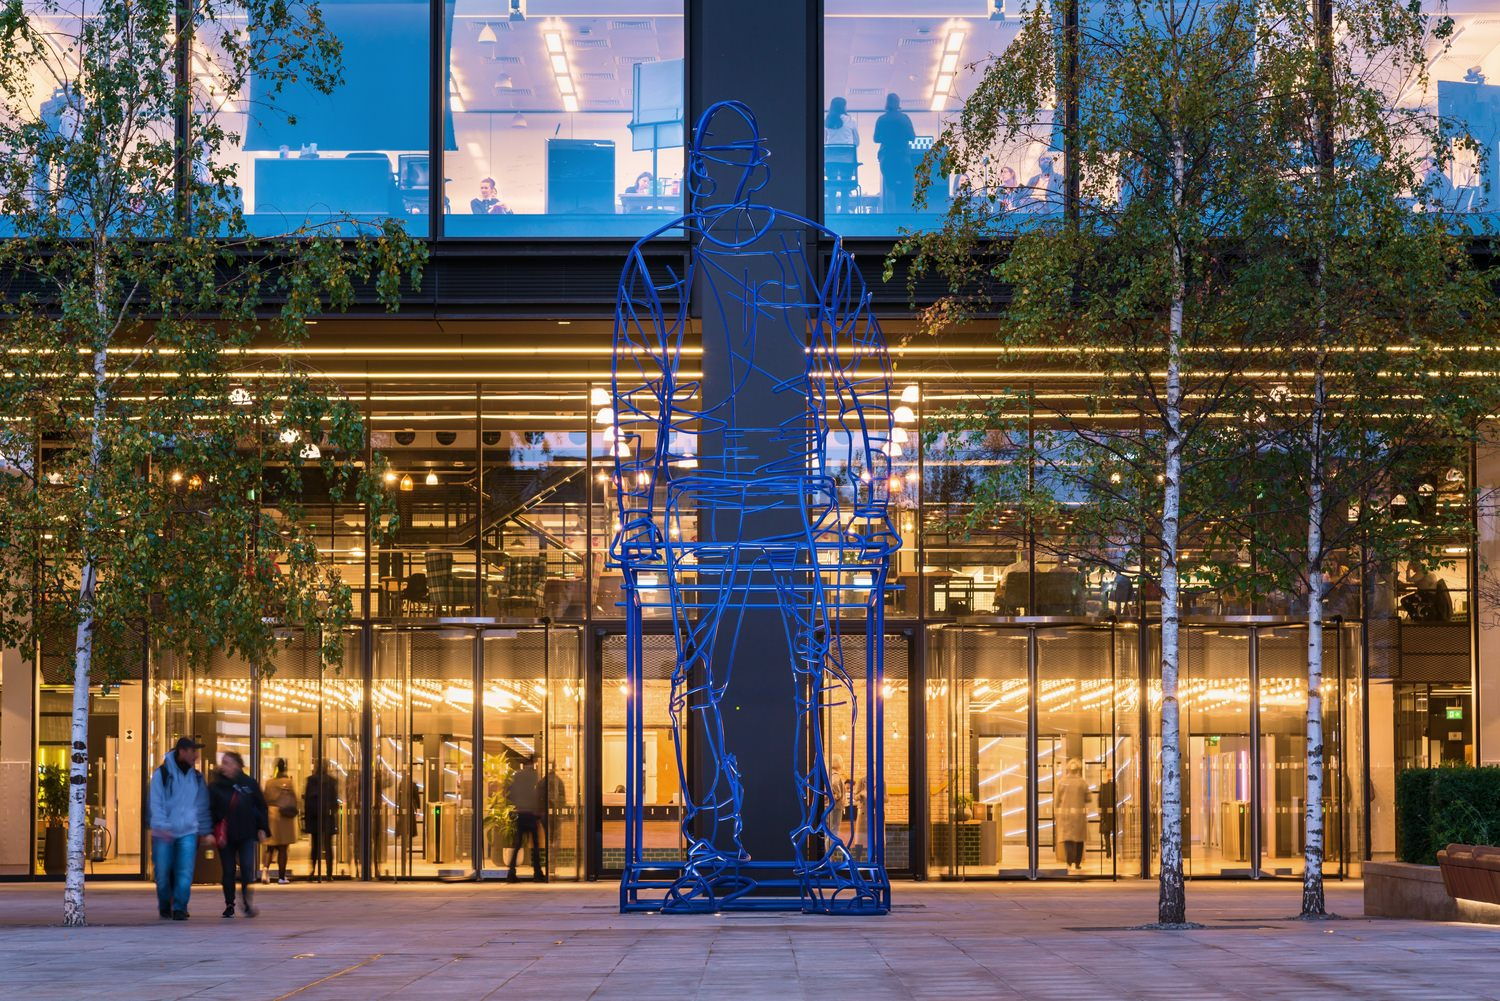 Entrance to a lit lobby during the evening. A large blue wire sculpture of a man sitting sits in the center of the frame.